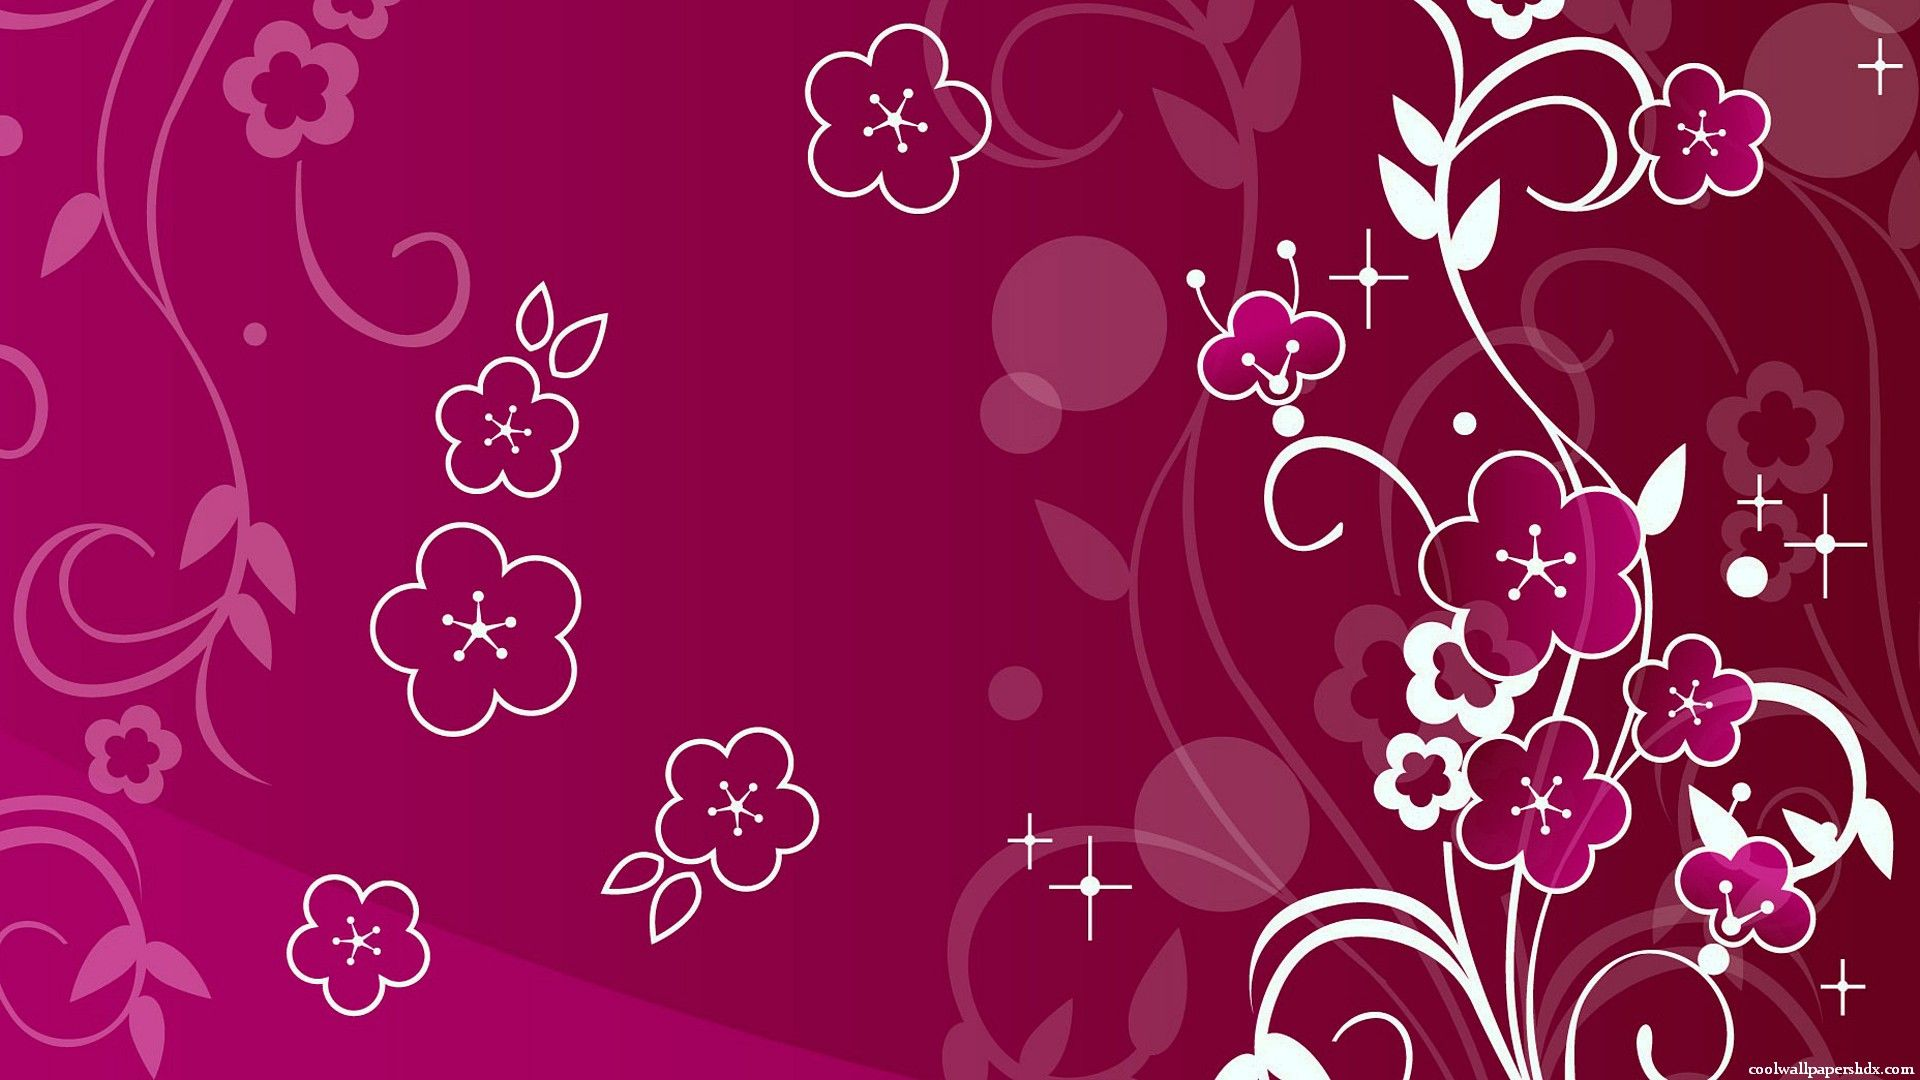 Girly wallpapers pink backgrounds | Avatars and ... Girly Background